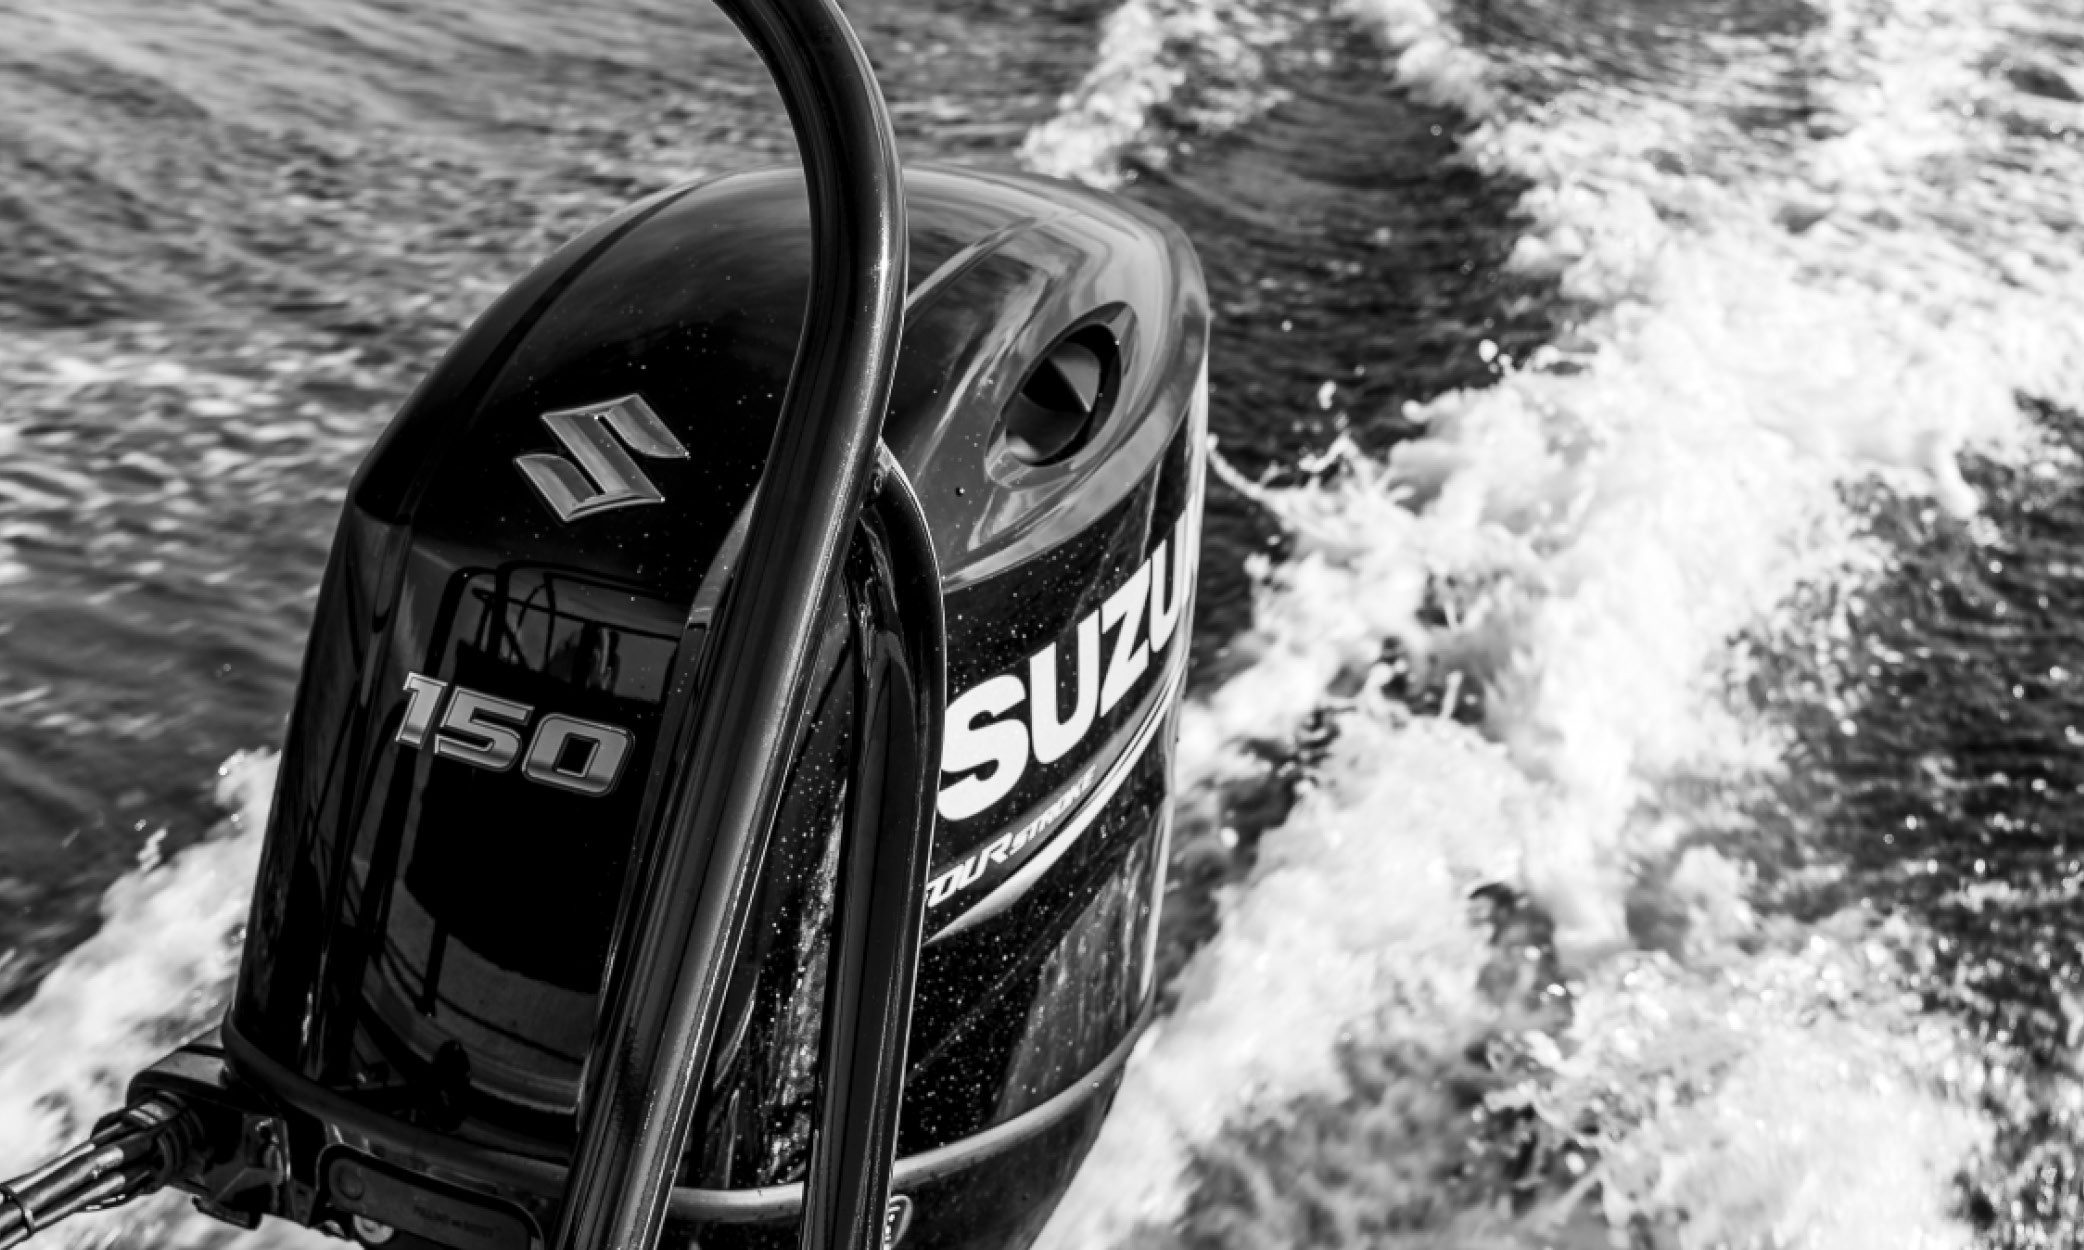 First Look: 3 Exciting New Suzuki Outboard Motors